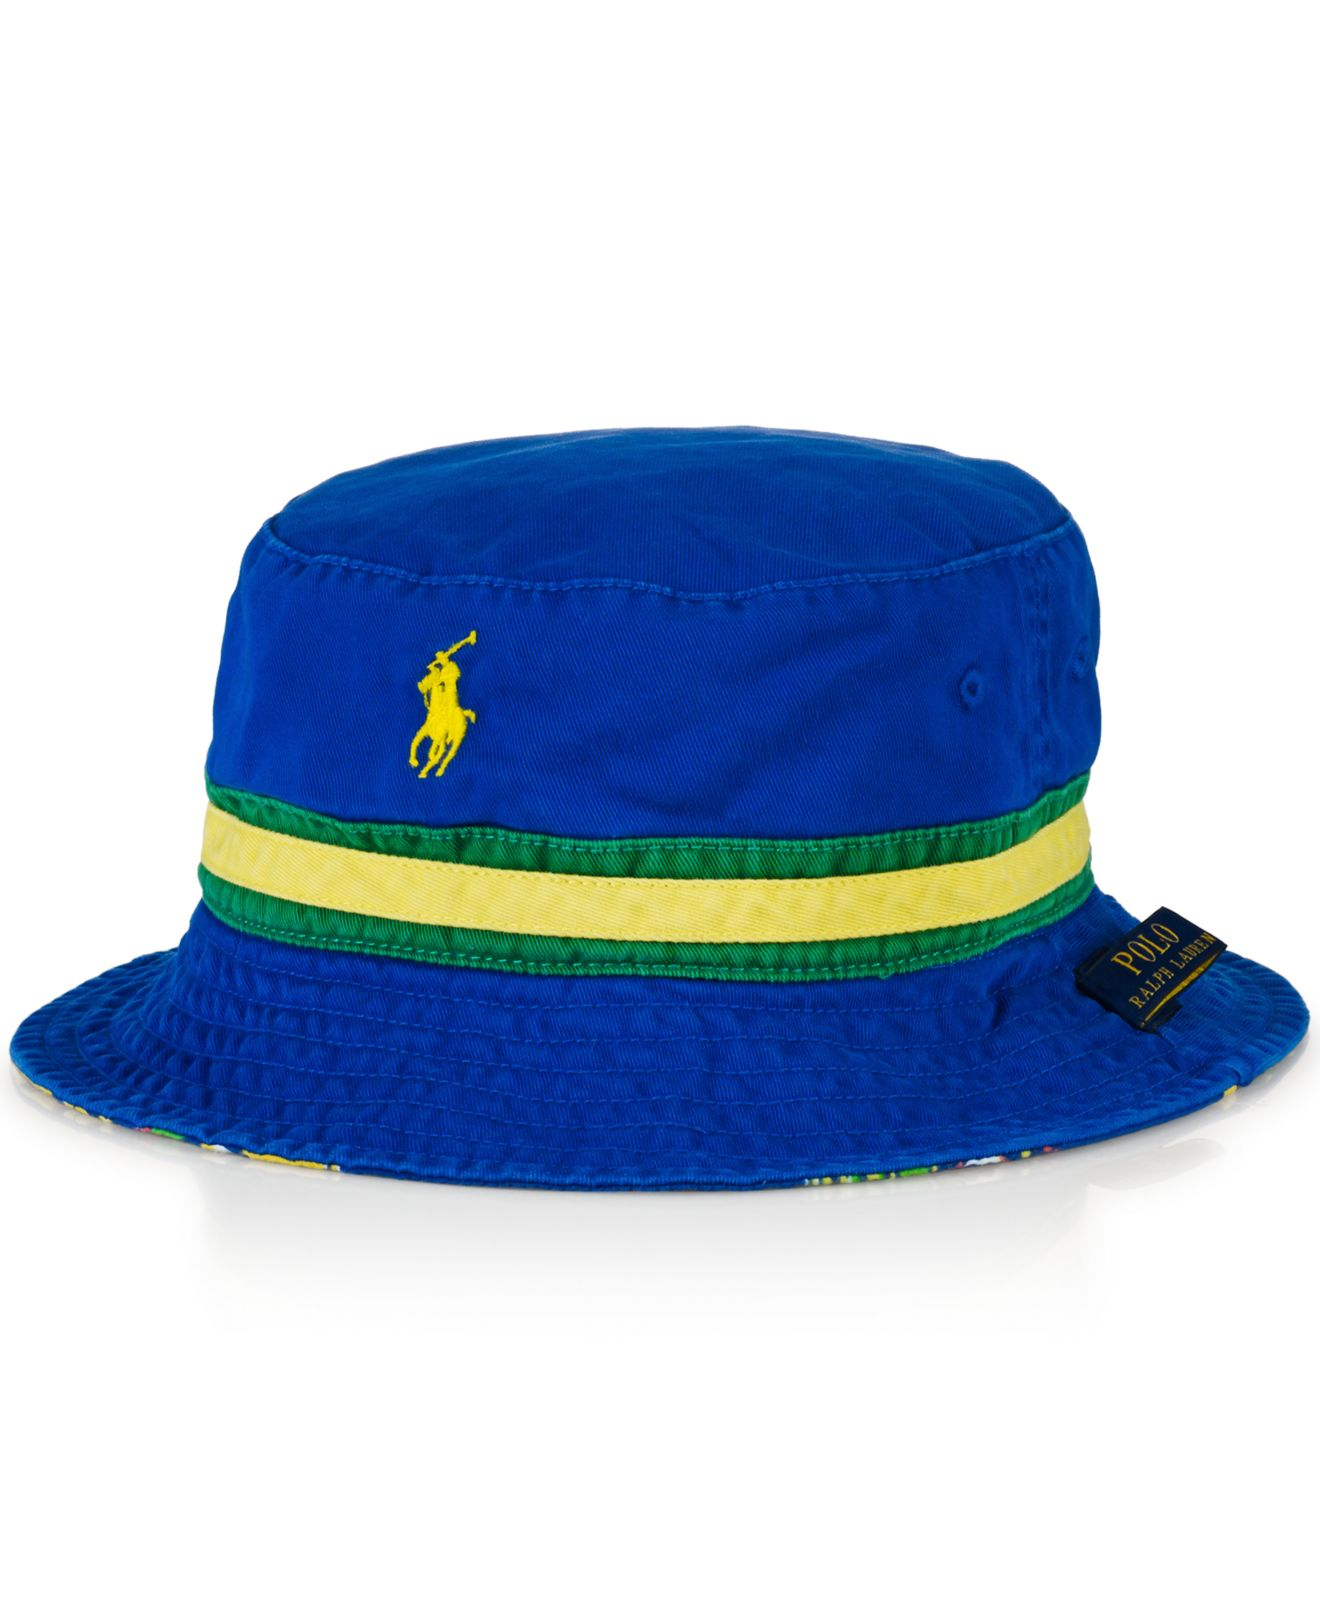 40838f46e6190 Polo Ralph Lauren Reversible Bucket Hat in Blue for Men - Lyst